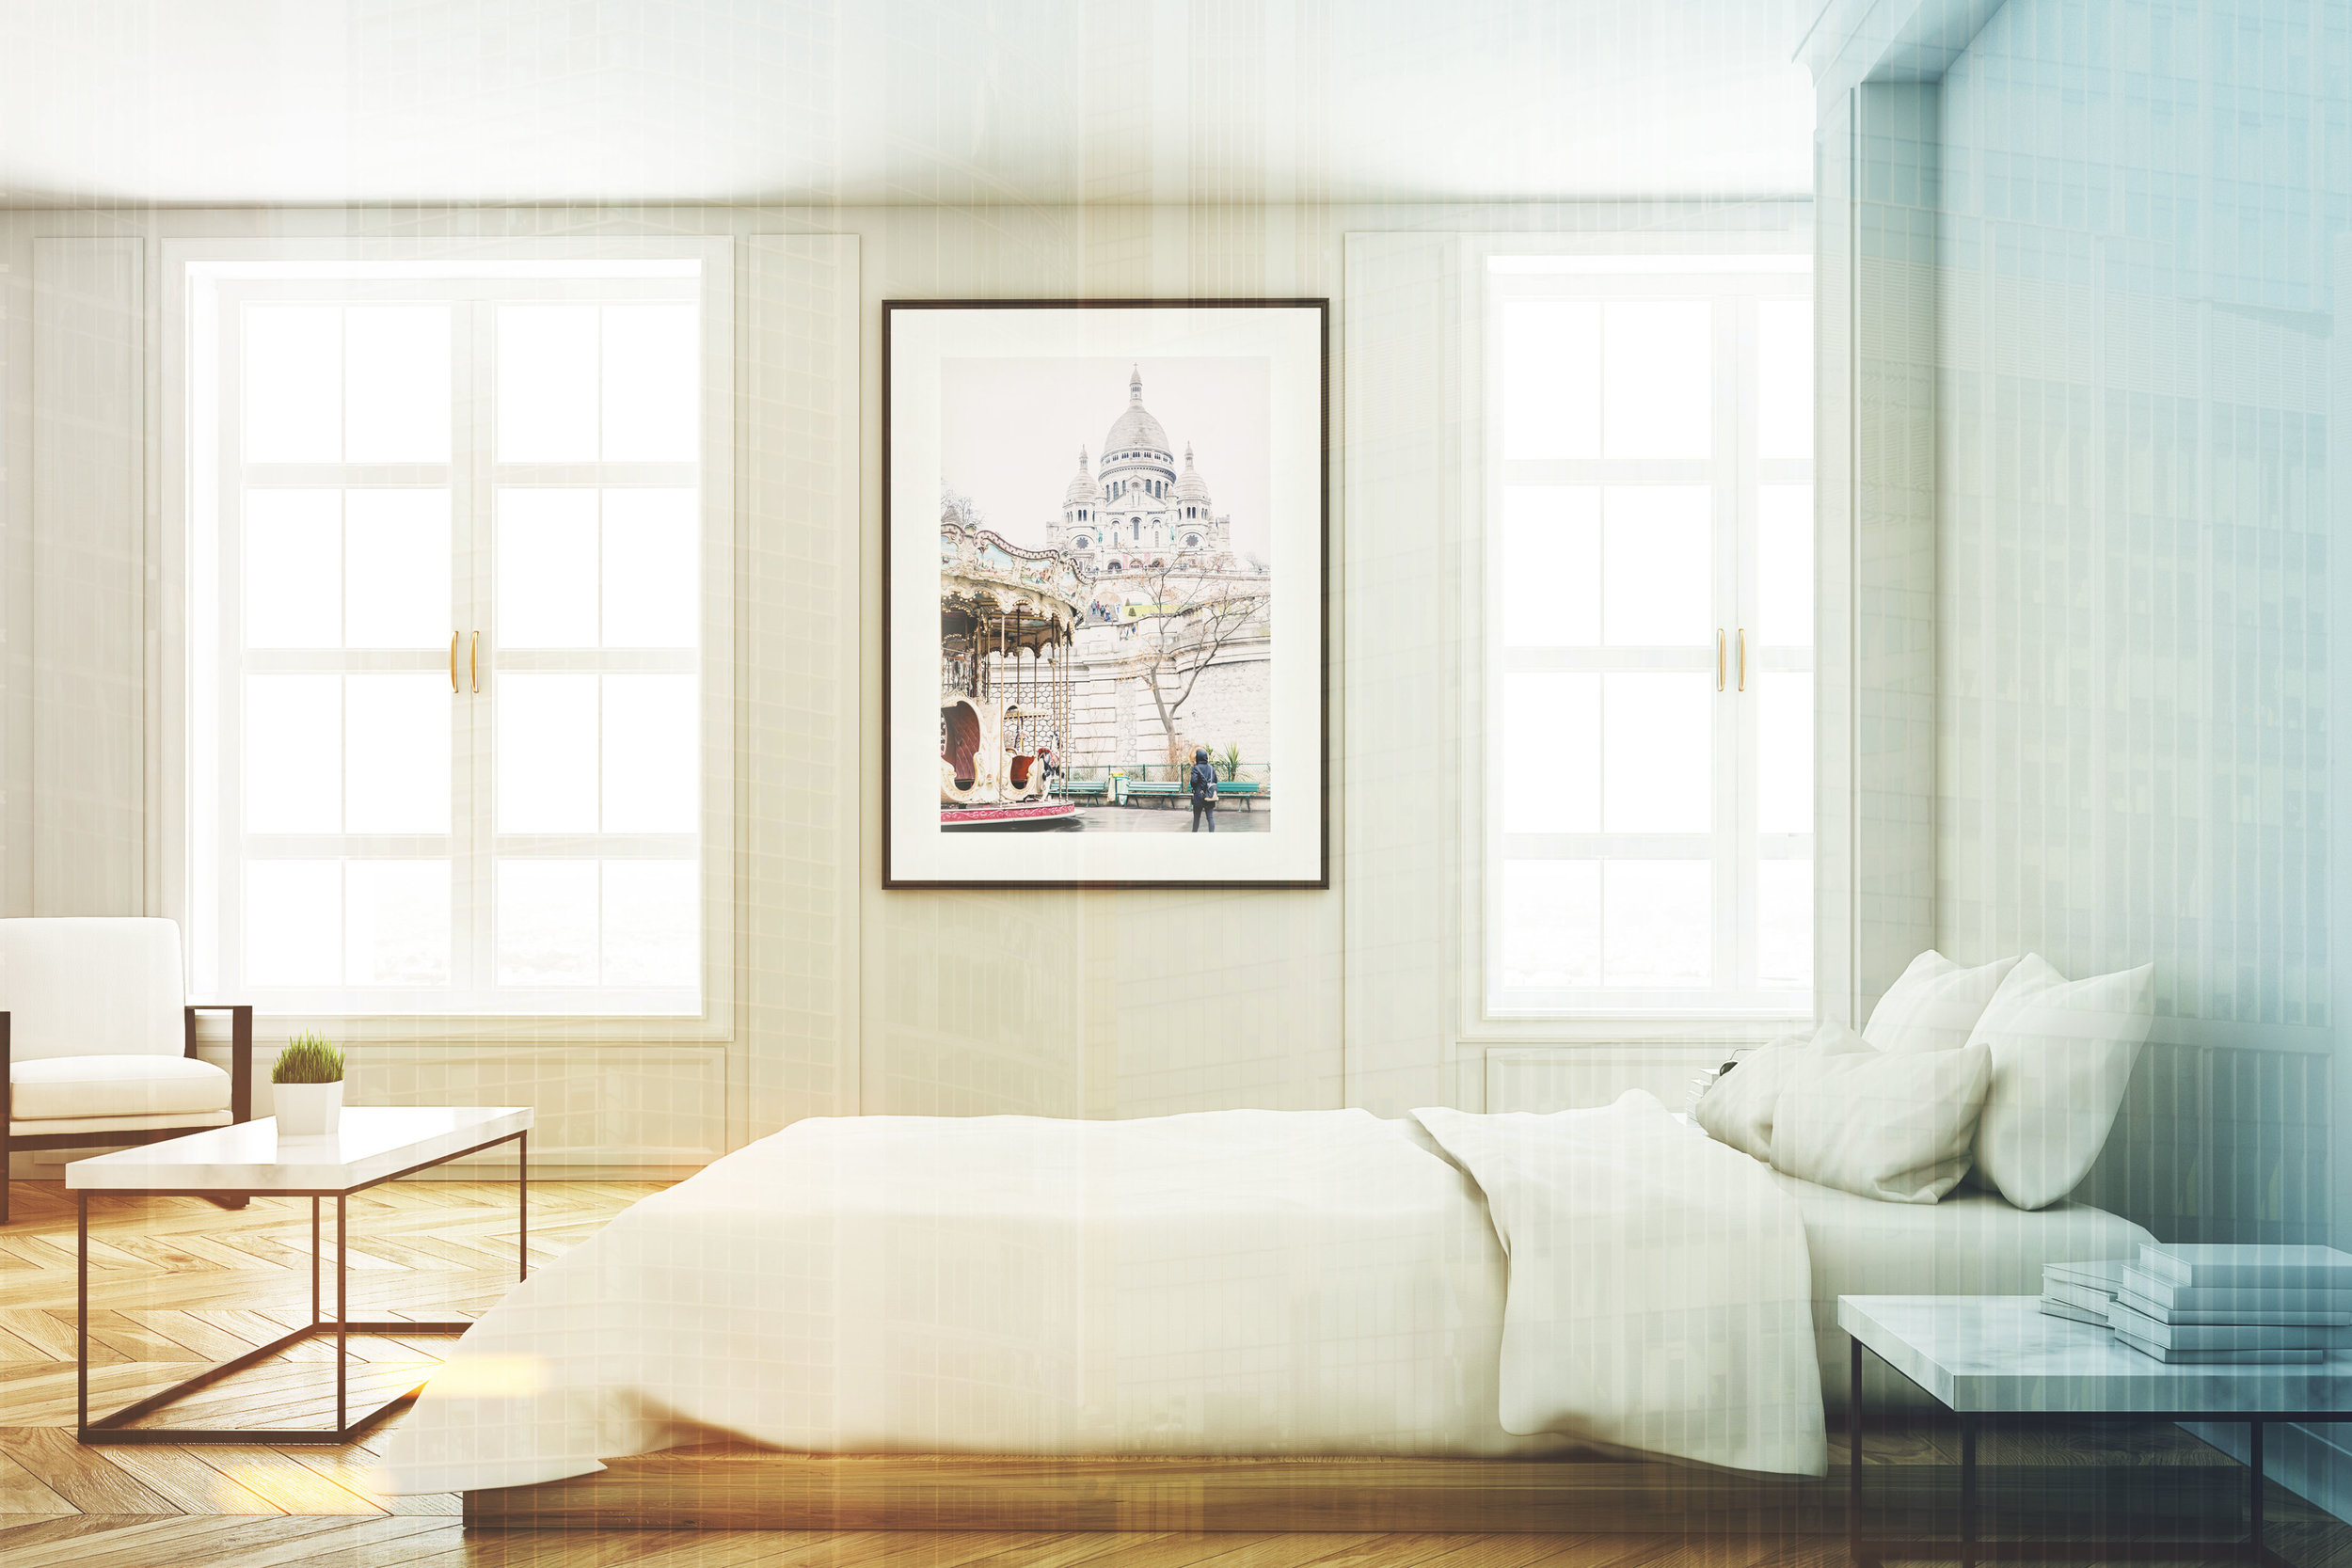 View of a bedroom with poster toned